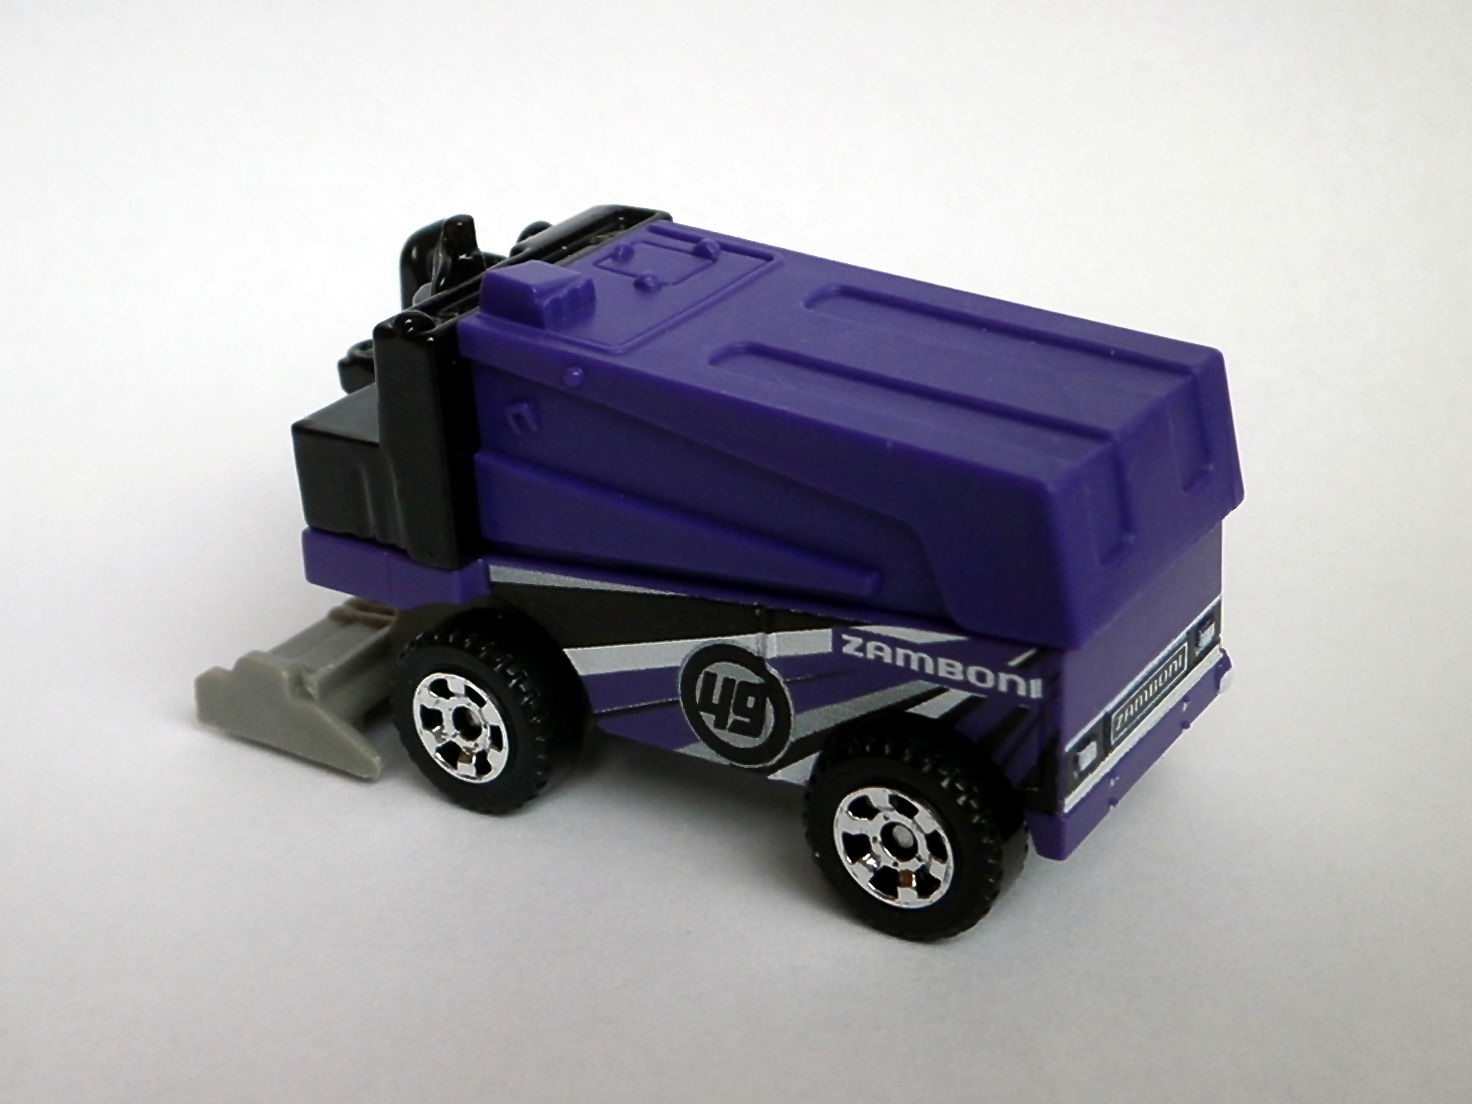 Coloring Pages Zamboni : Amazon playmobil nhl zamboni machine toys games